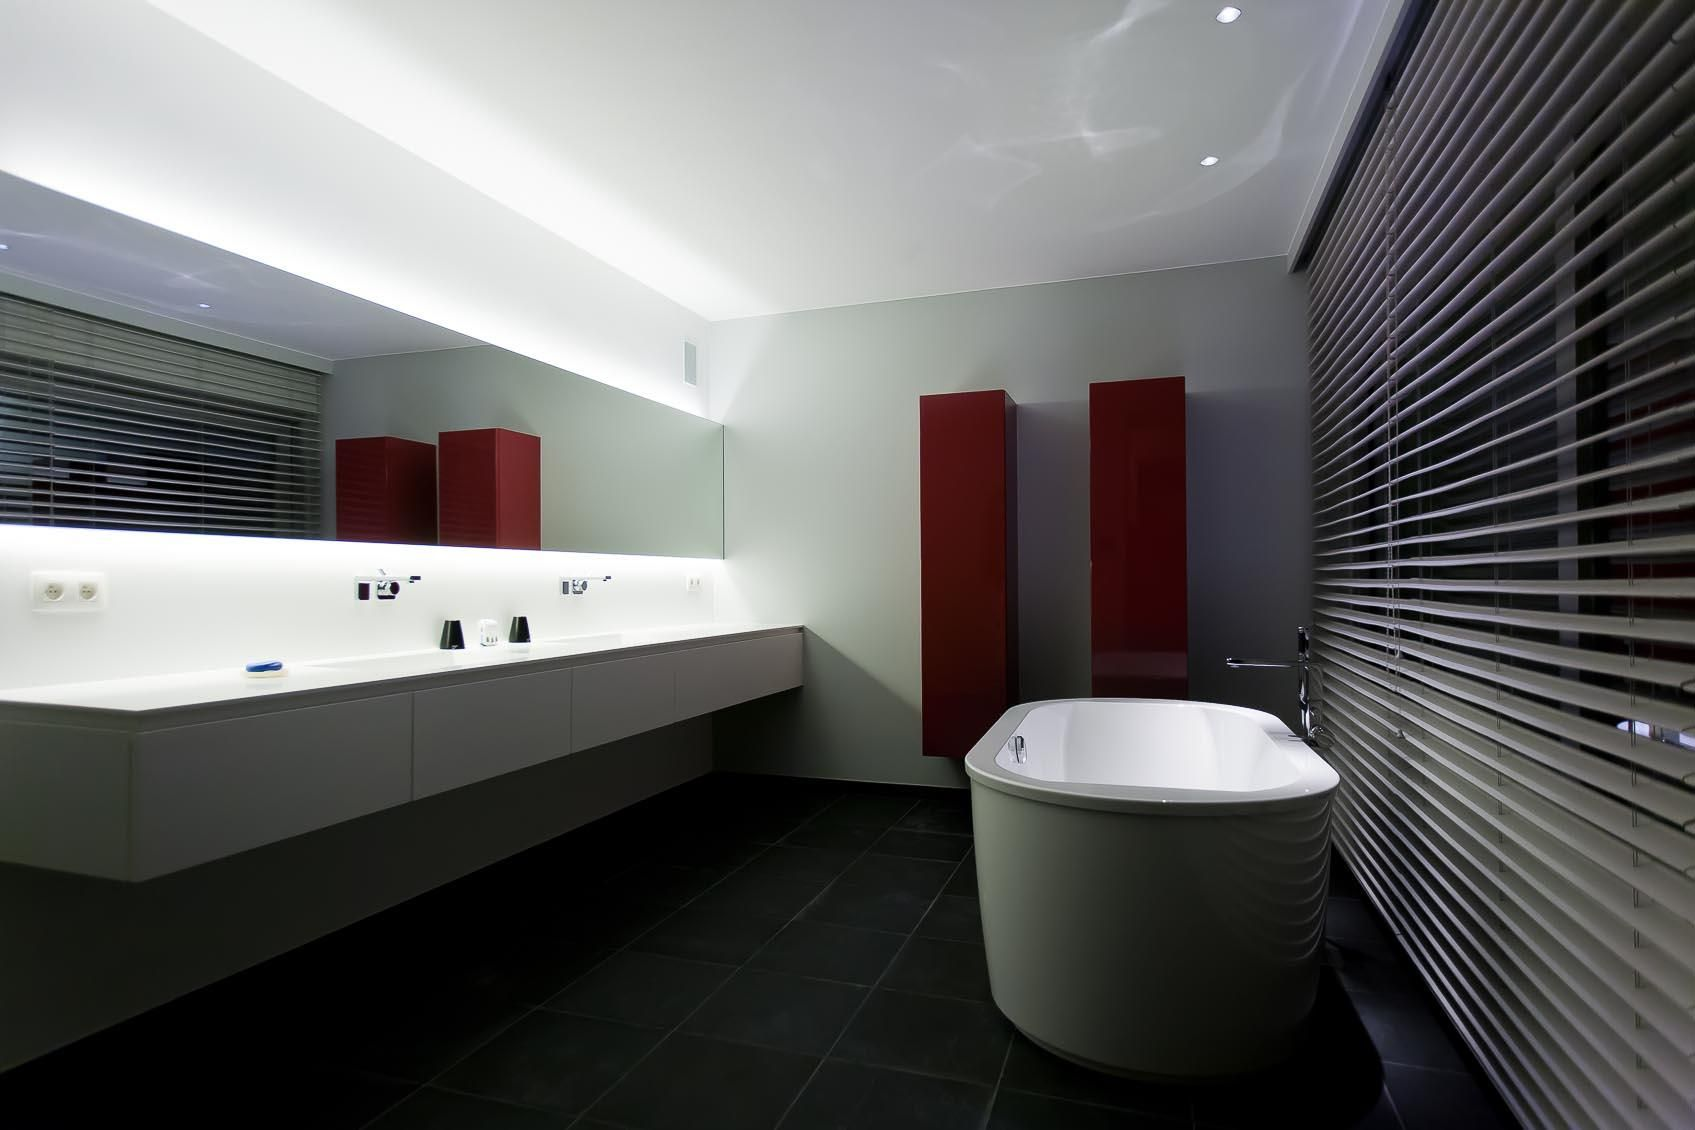 Led In Badkamer : Moderne strakke badkamer met indirecte led spiegelverlichting up